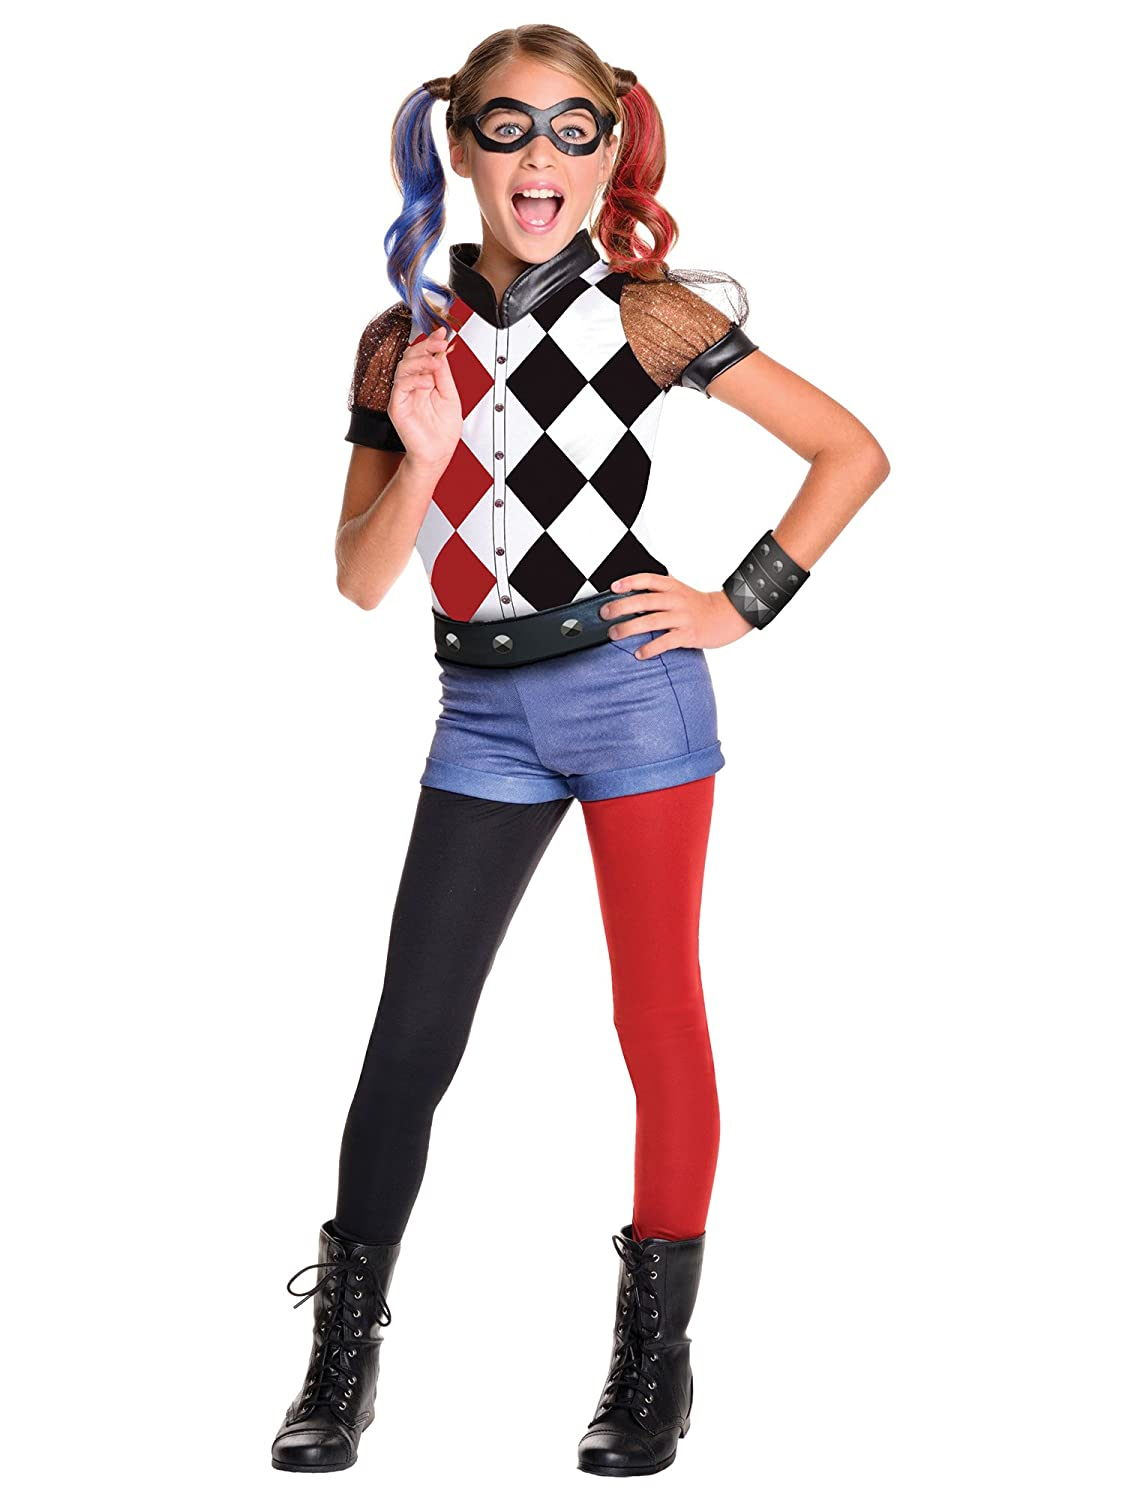 Rubie's DC Superhero Girl's Harley Quinn Costume, Medium Rubie's Costume Co 620712_M